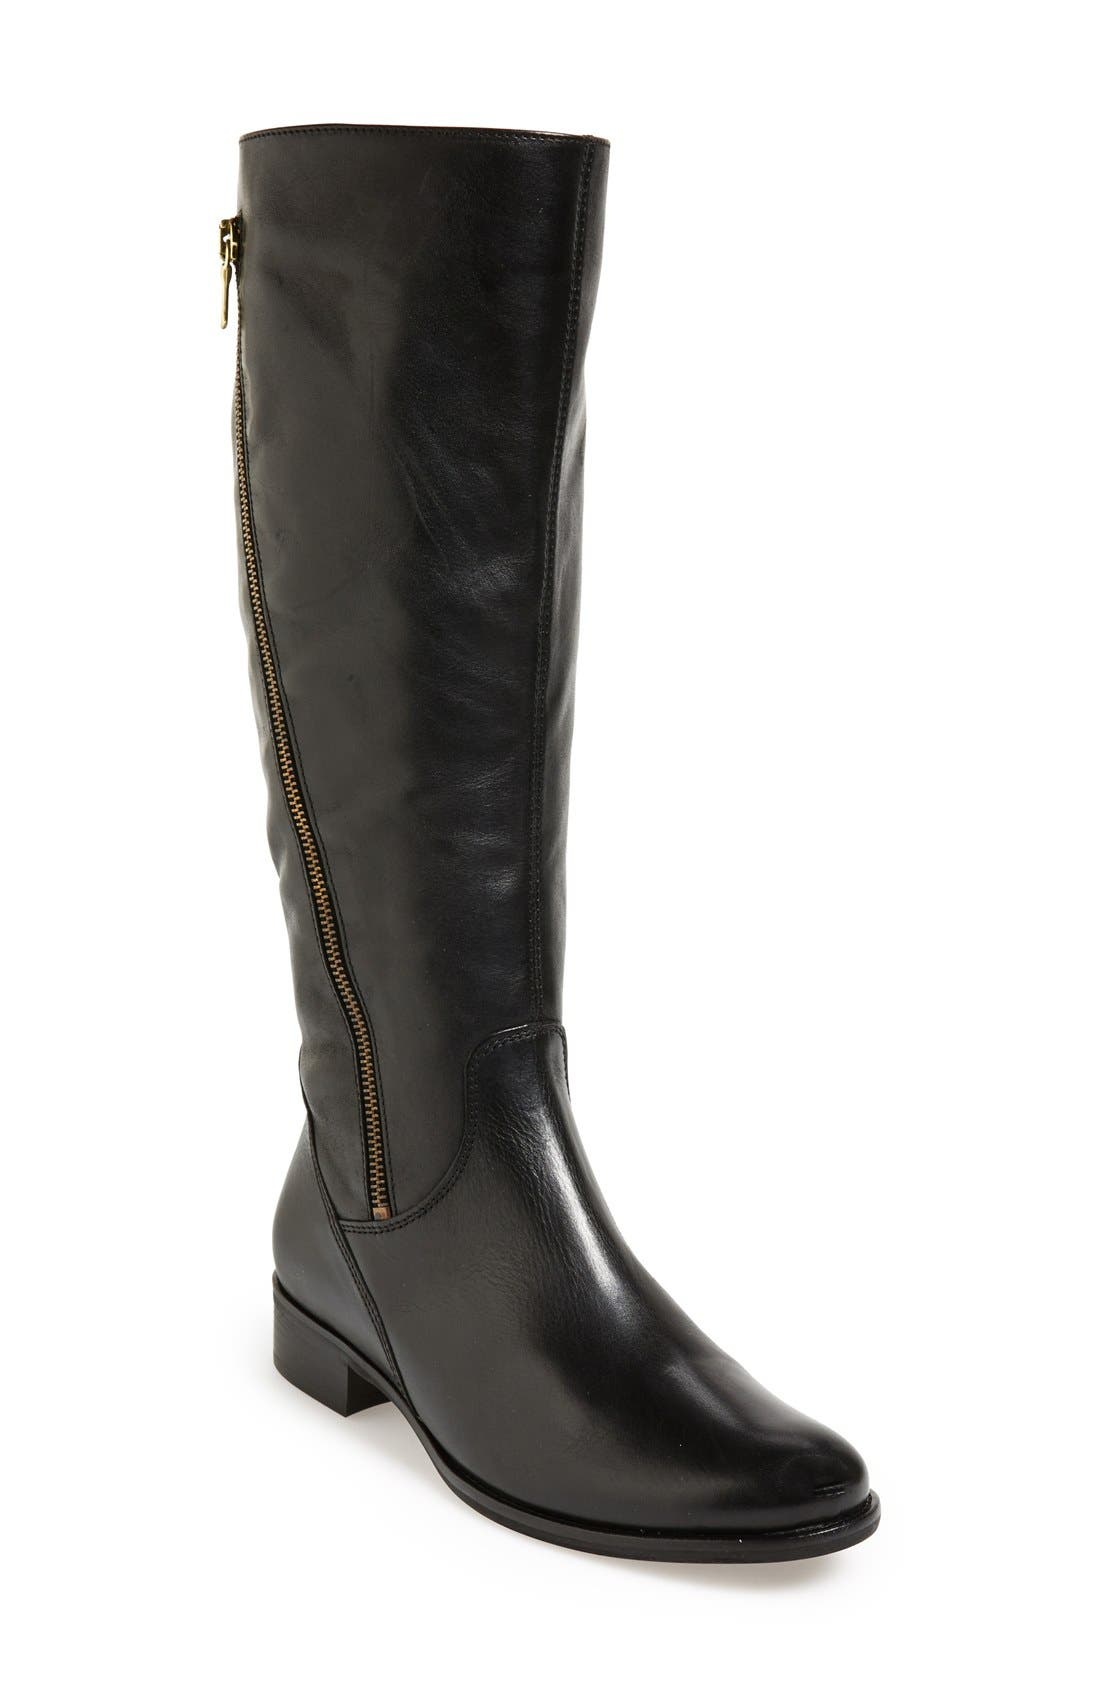 Main Image - Gabor 'Gold' Leather Riding Boot (Women)